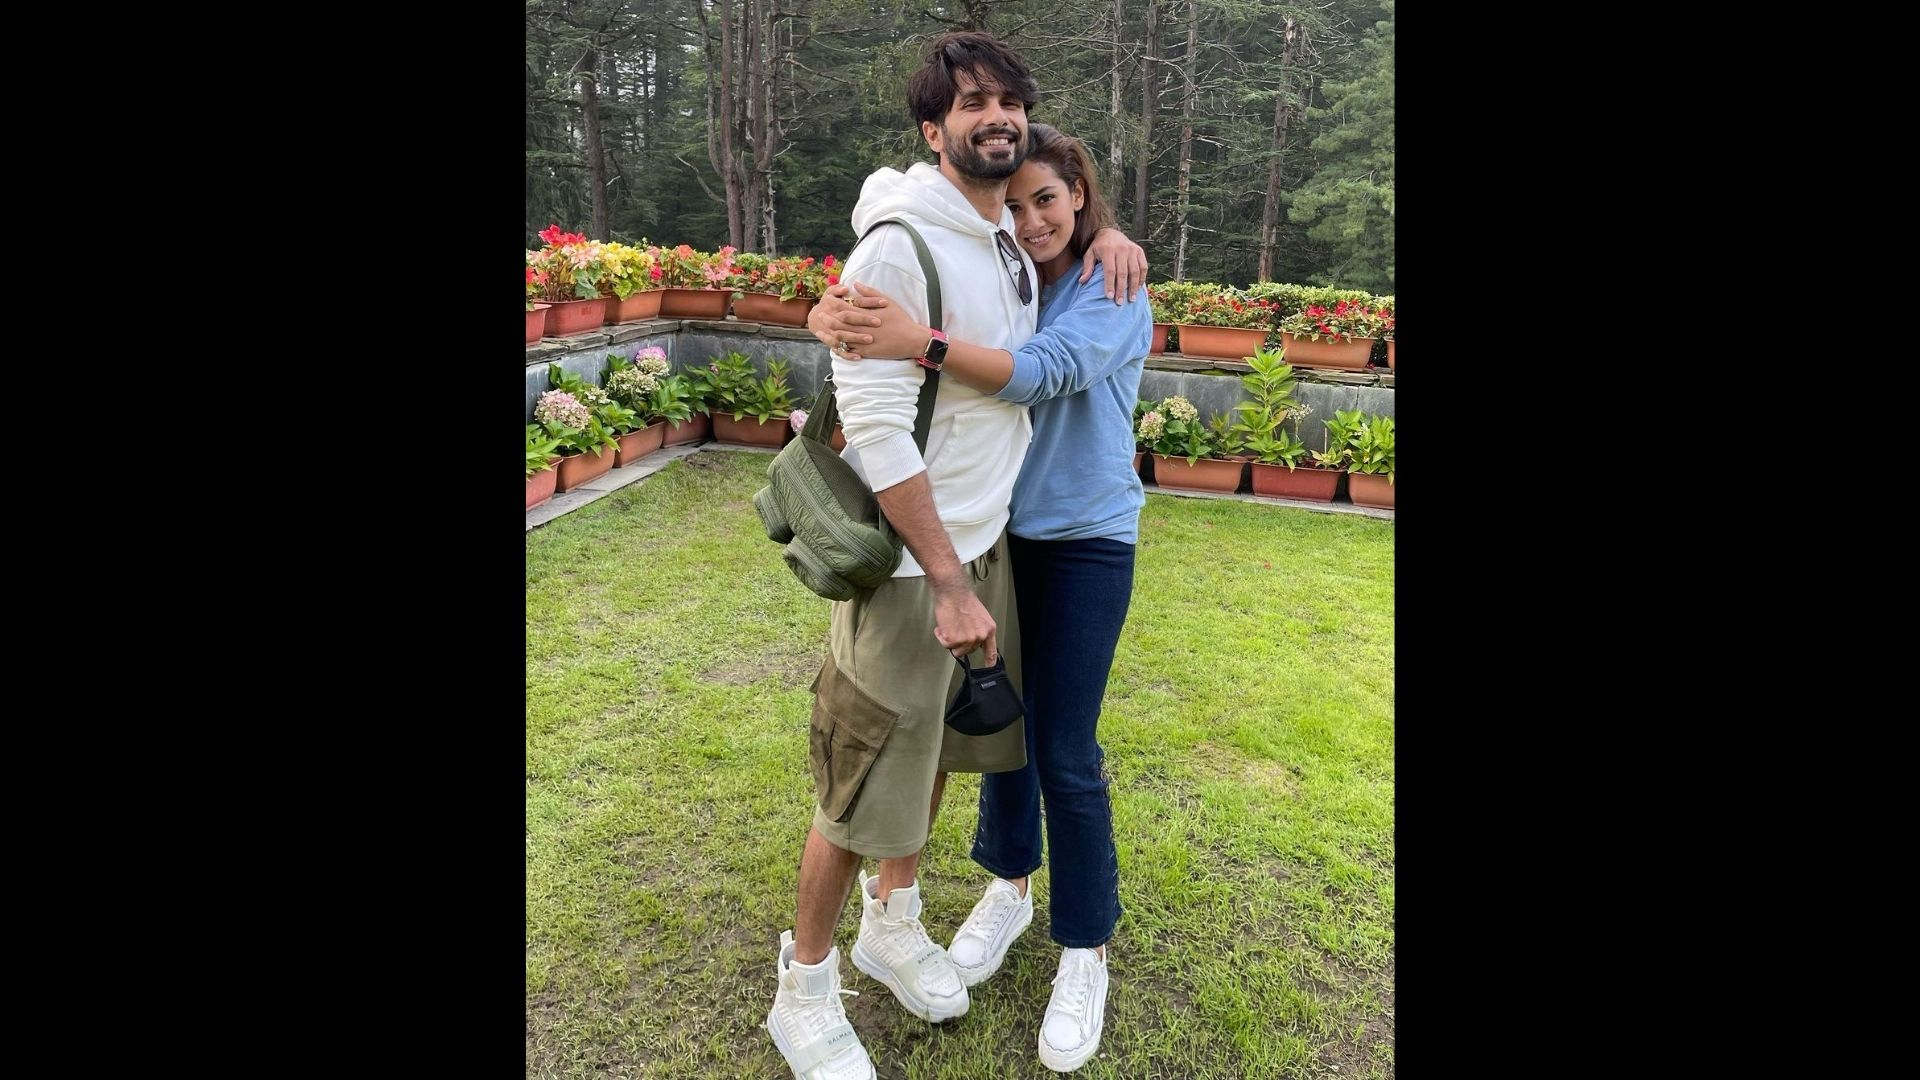 Shahid Kapoor And Mira Rajput Spend Gala Time In Maldives; See Photos And Videos From Their Tropical Vacation Here